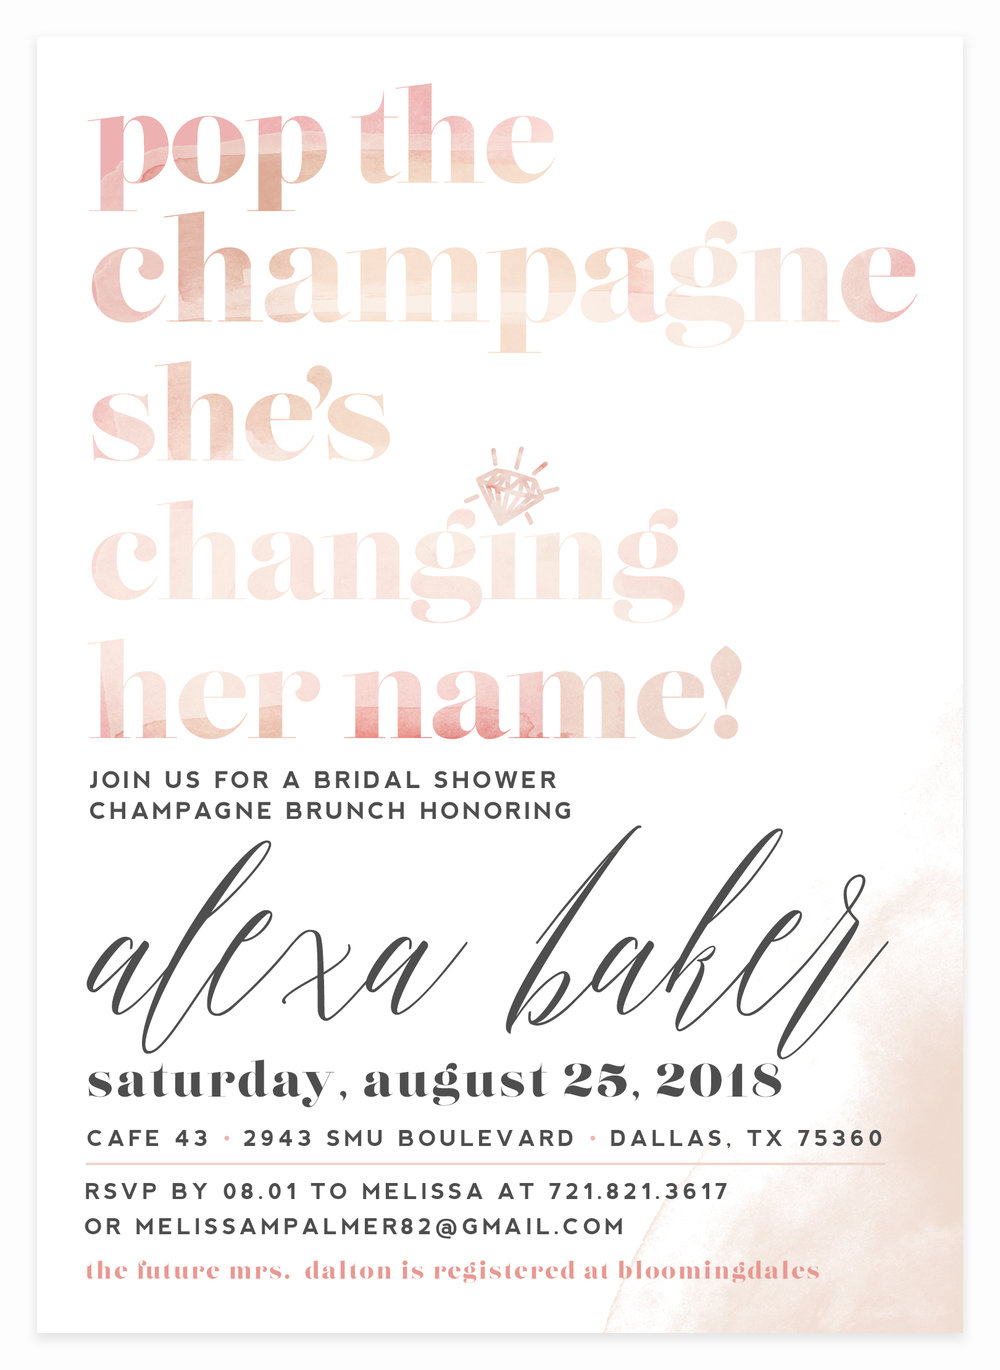 Kitty meow boutique pop the champagne shower invitation for bride to be filmwisefo